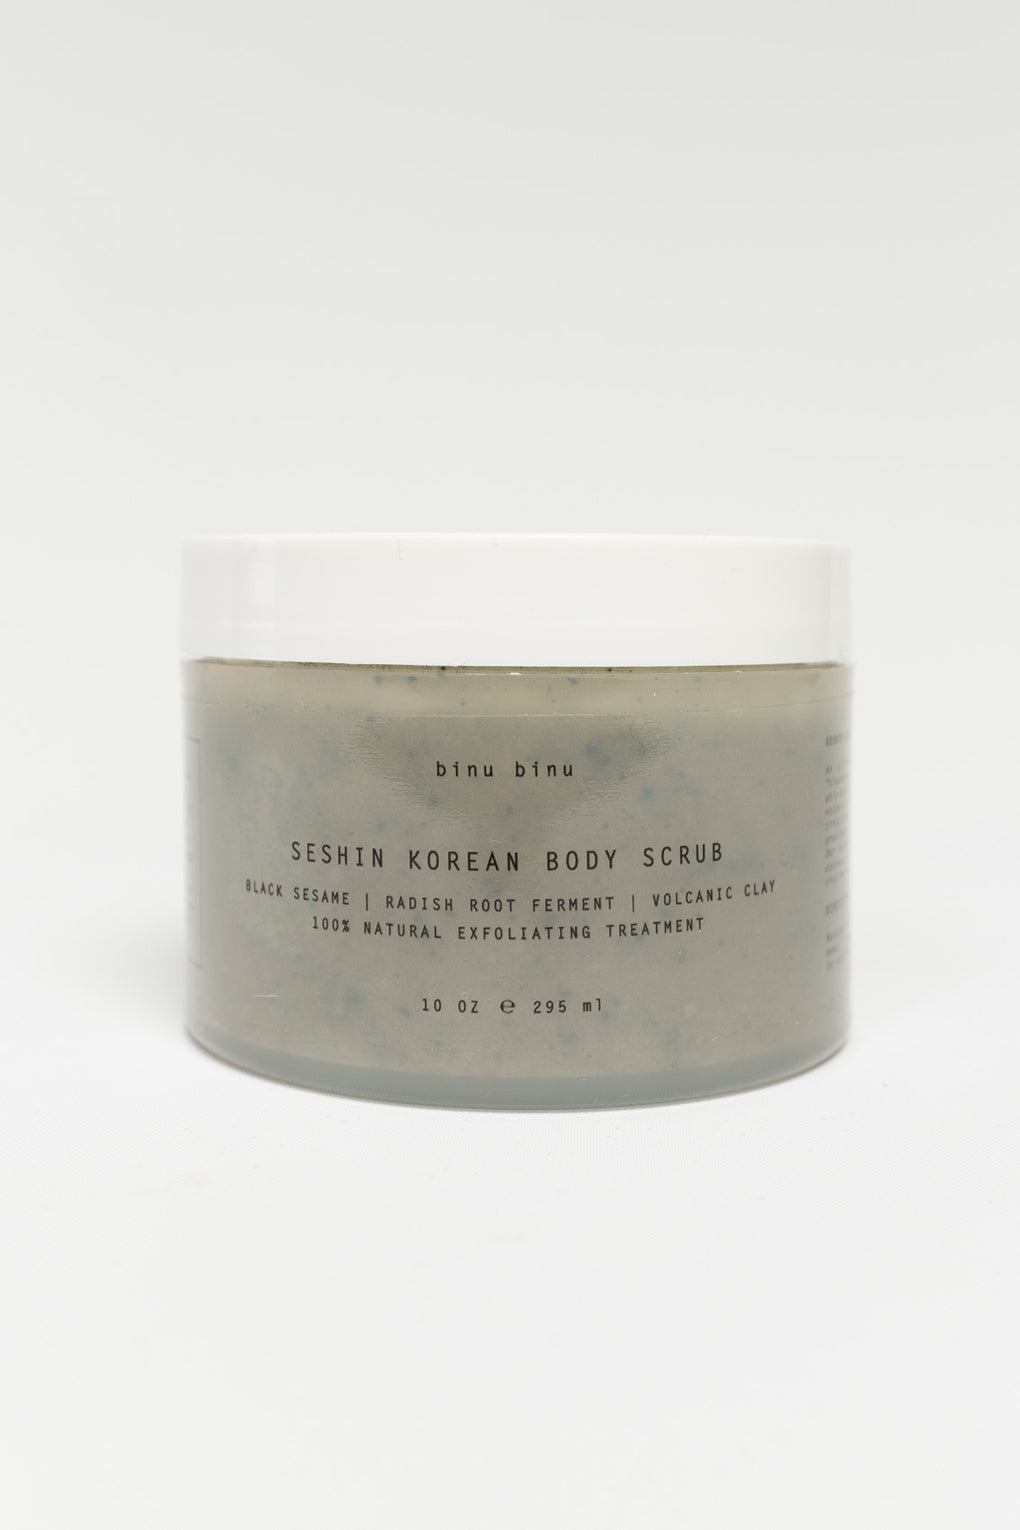 Seshin Korean Body Scrub